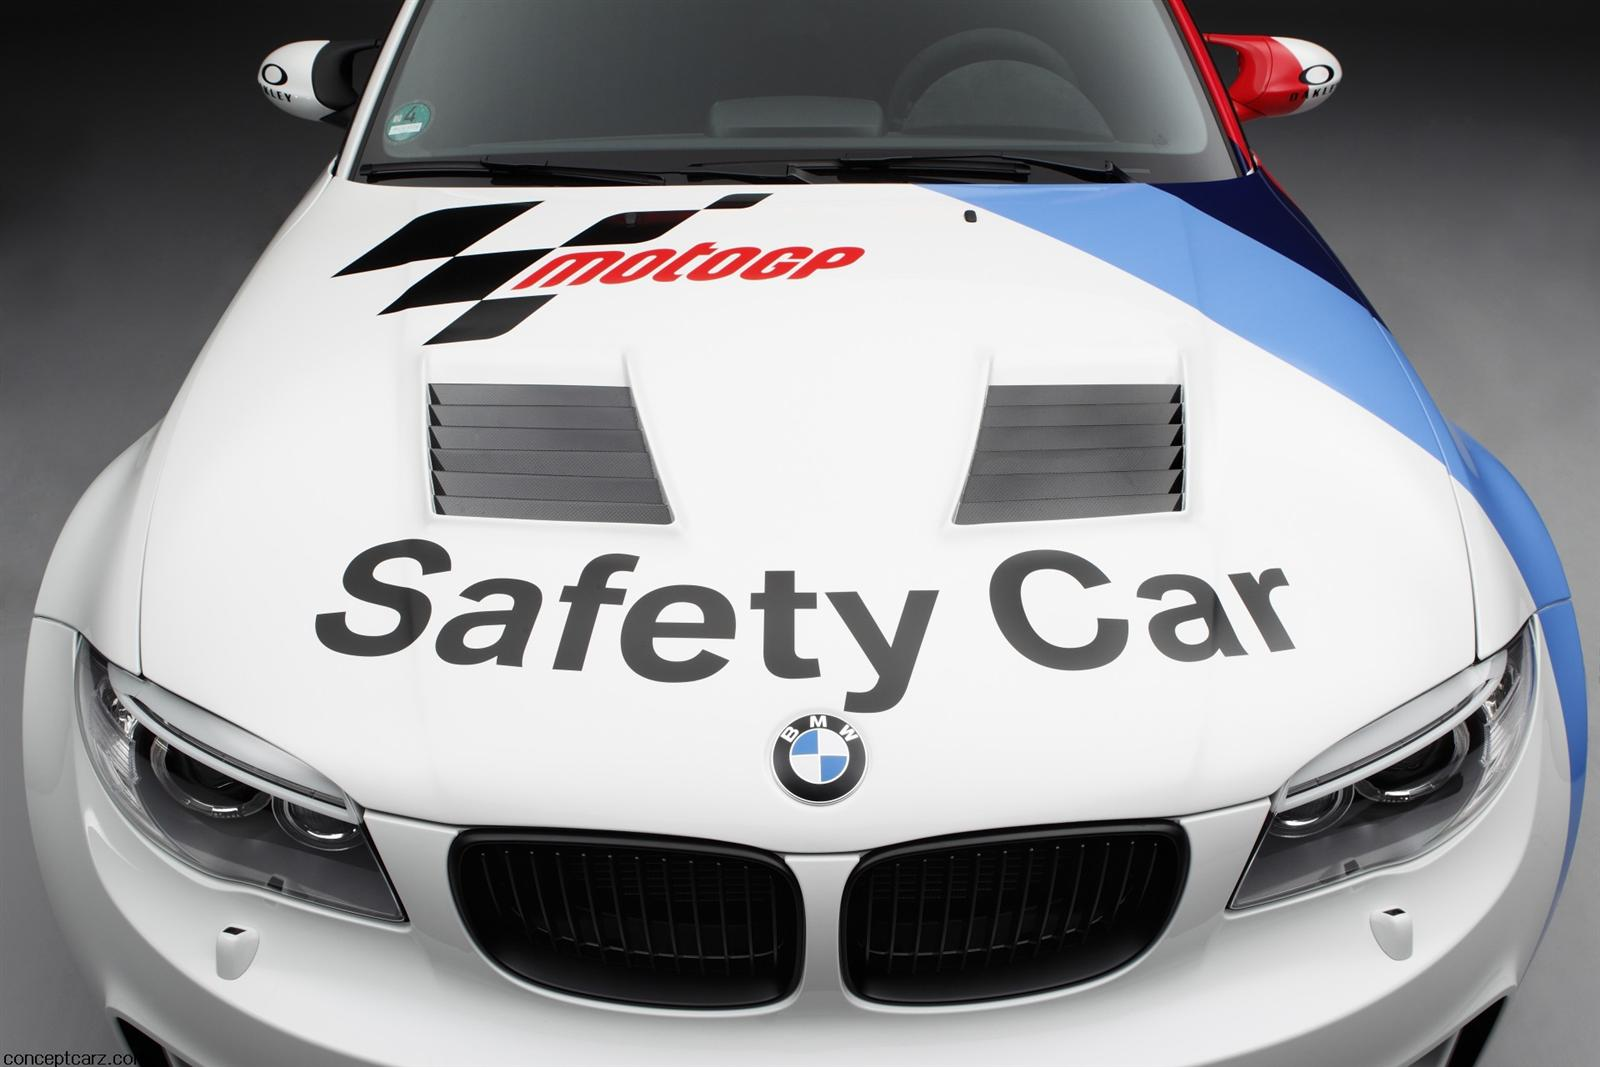 2011 BMW 1 Series M Coupé MotoGP Safety Car Image